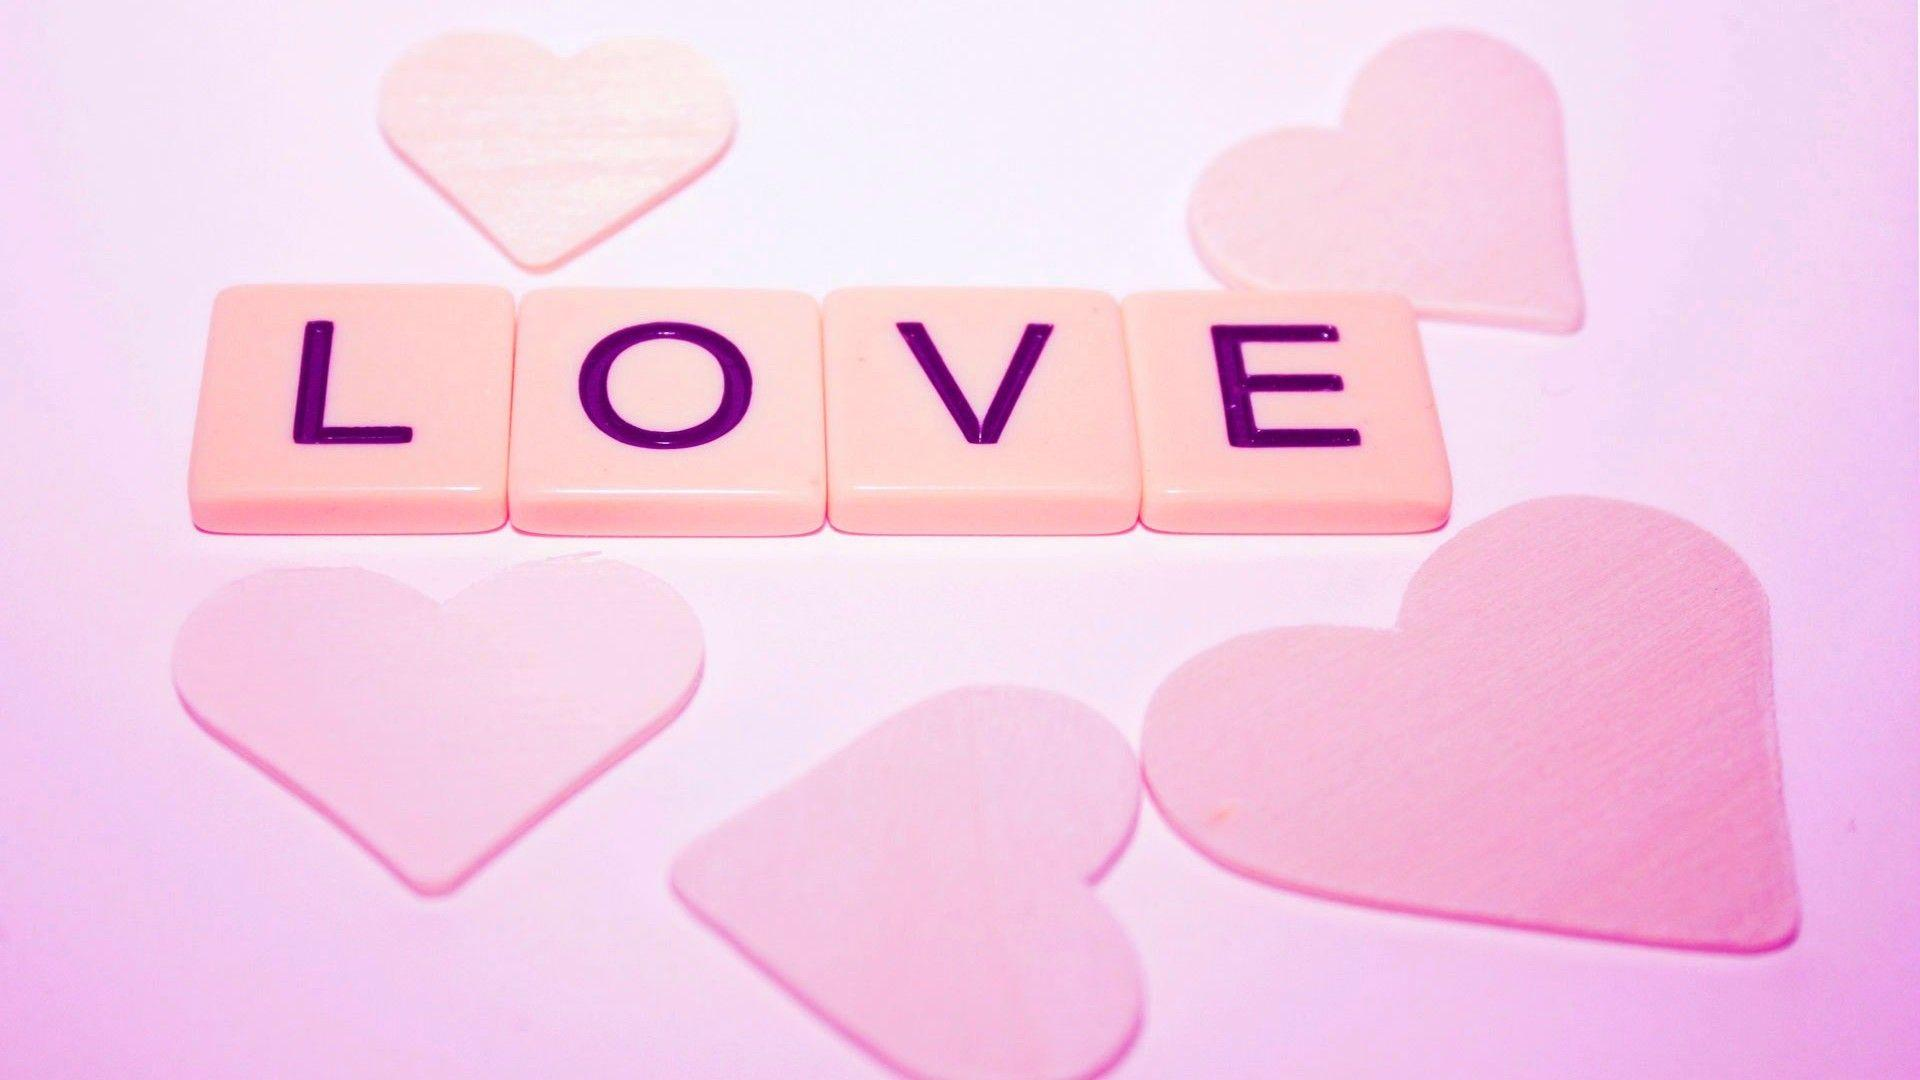 Wallpaper Love cute Photo : cute Love Backgrounds - Wallpaper cave